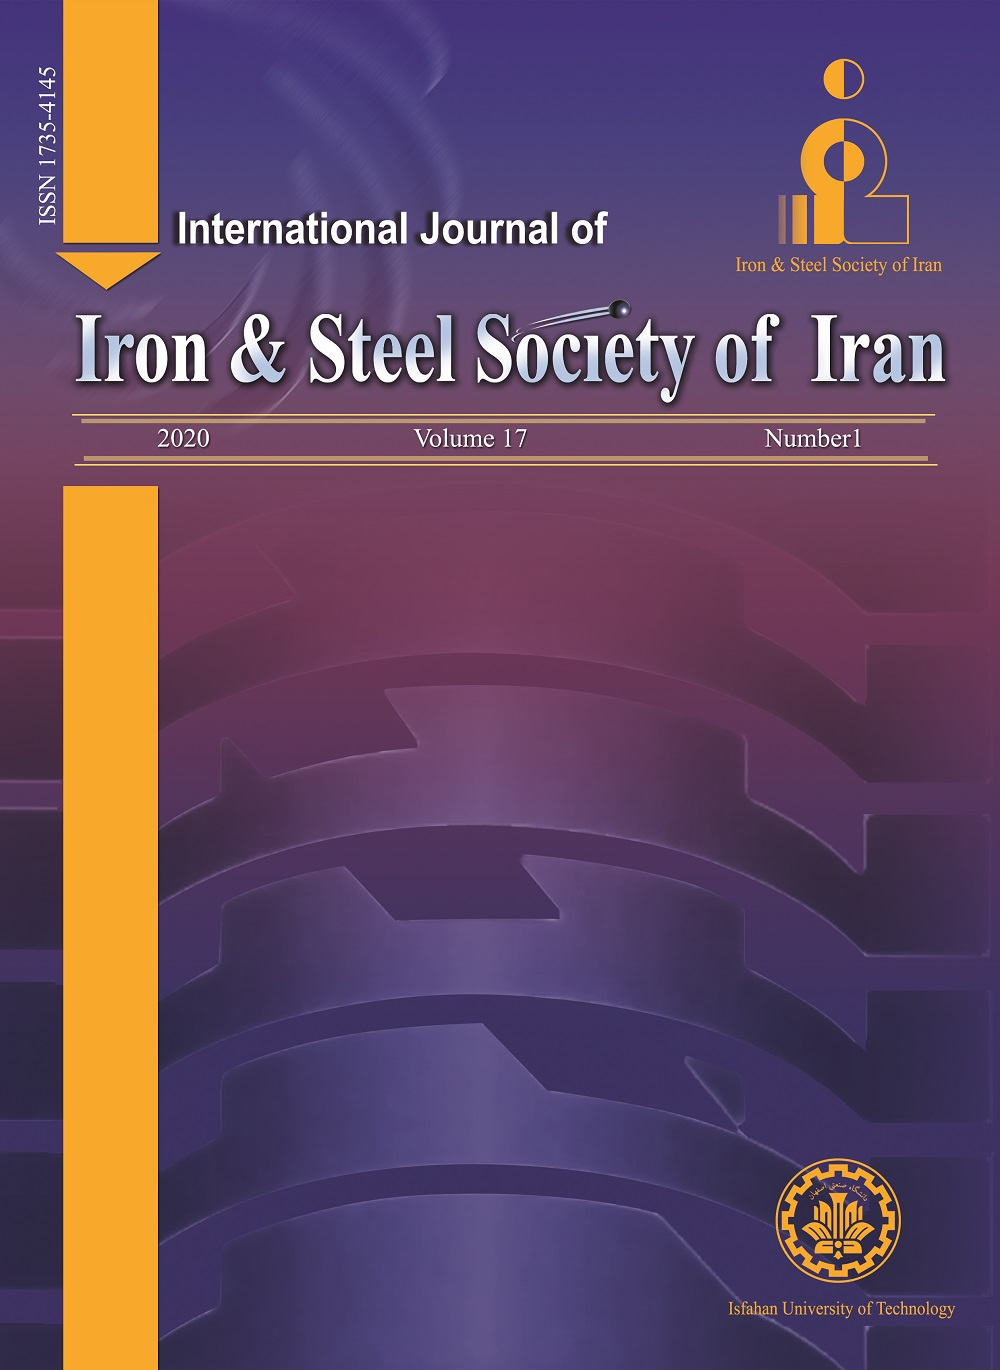 International Journal of Iron & Steel Society of Iran